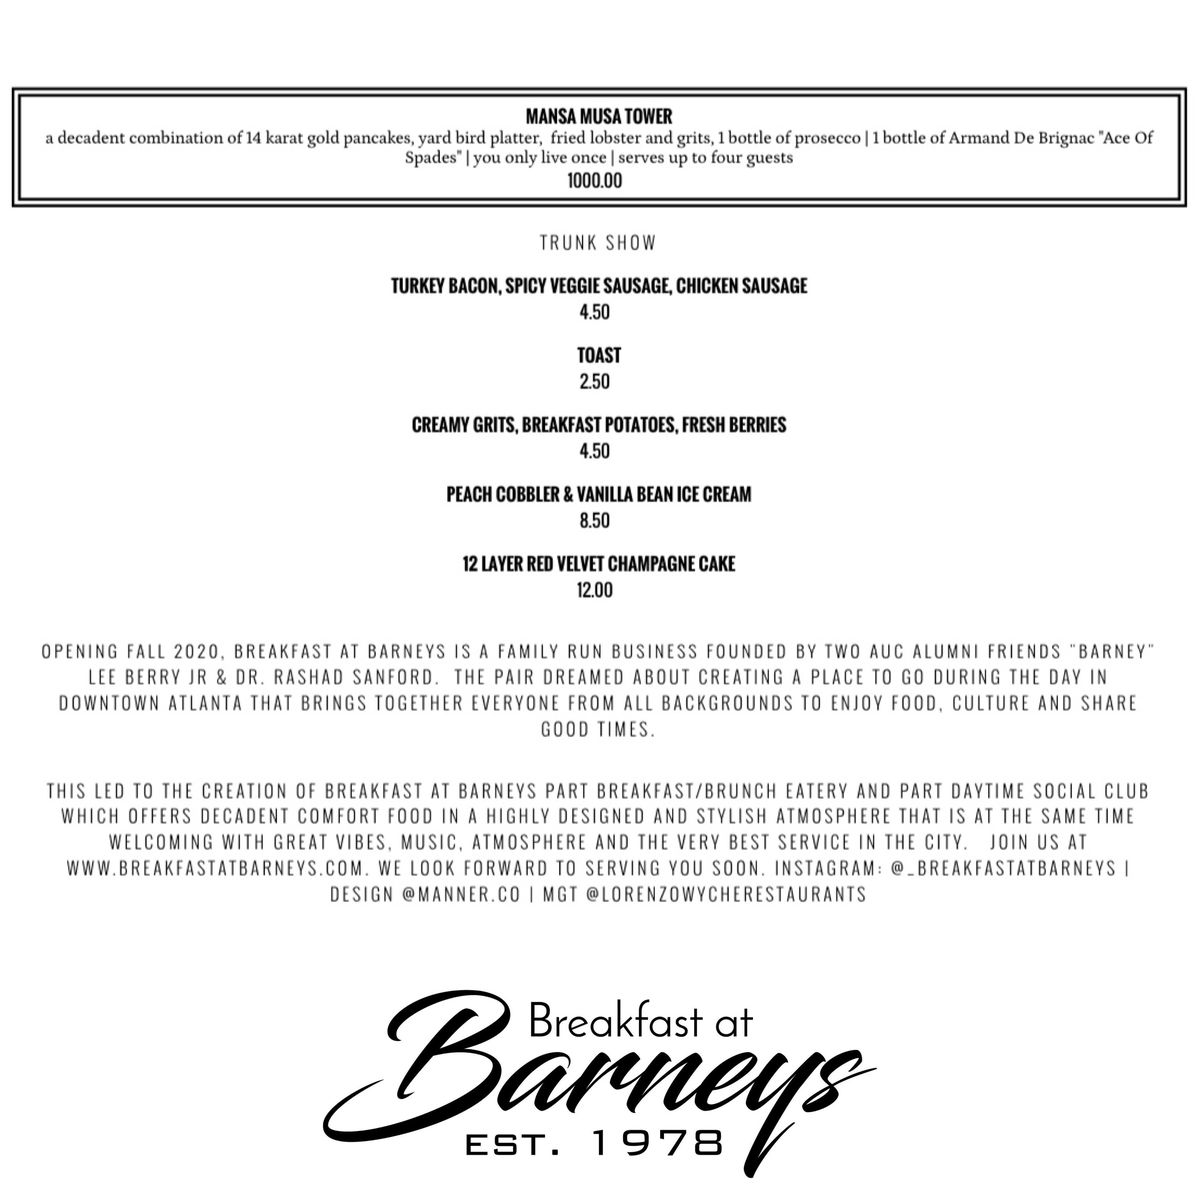 The menu for Breakfast at Barneys which includes an eye-popping $1,000 Mansa Musa Tower with lobster and grits, chicken and waffles, 1 bottle of prosecco, and 14 karat gold pancakes paired with a bottle of Ace of Spades Champagne